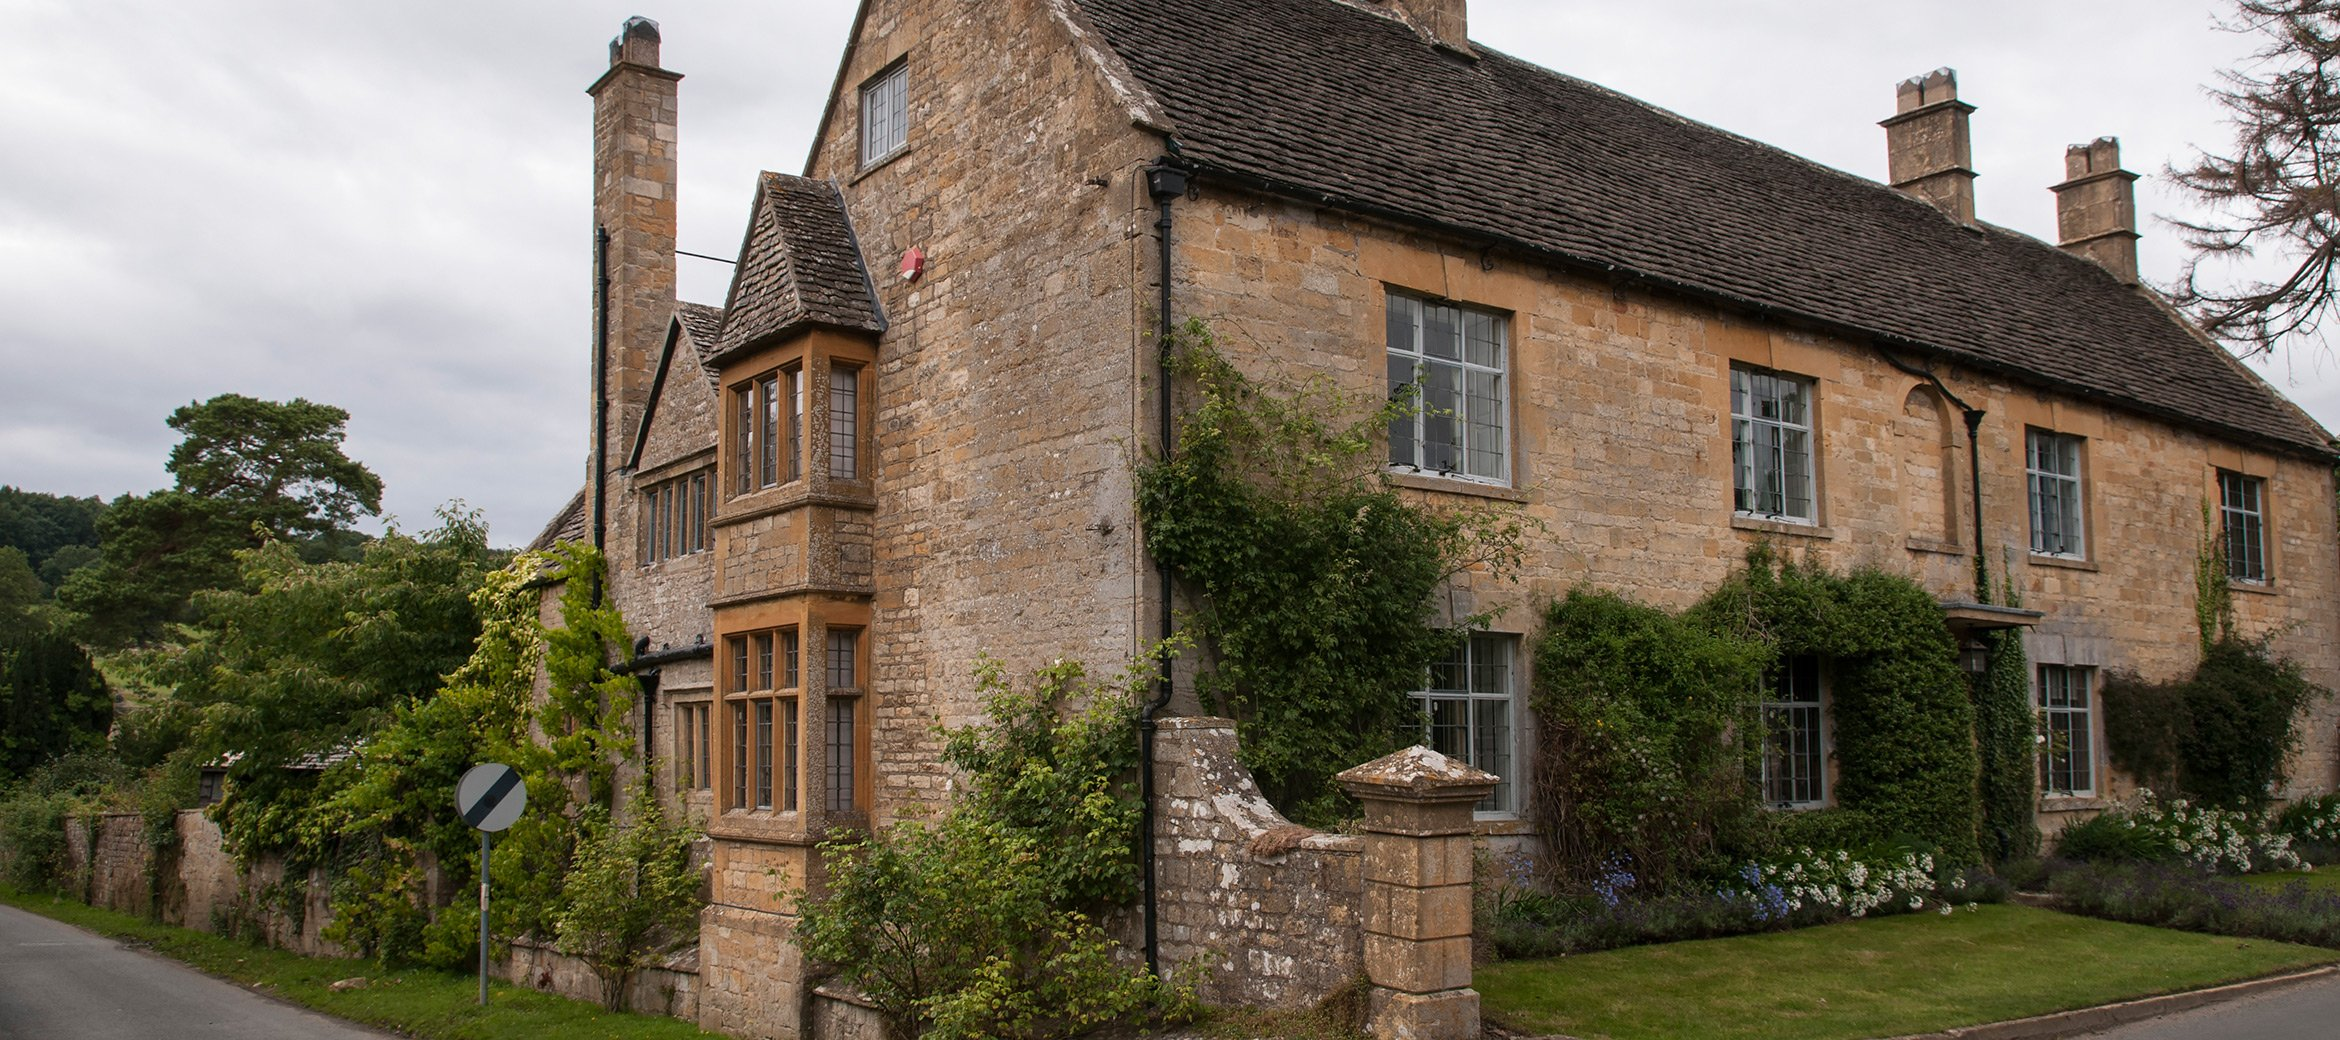 broadway-cotswold-manor-house-main-facade